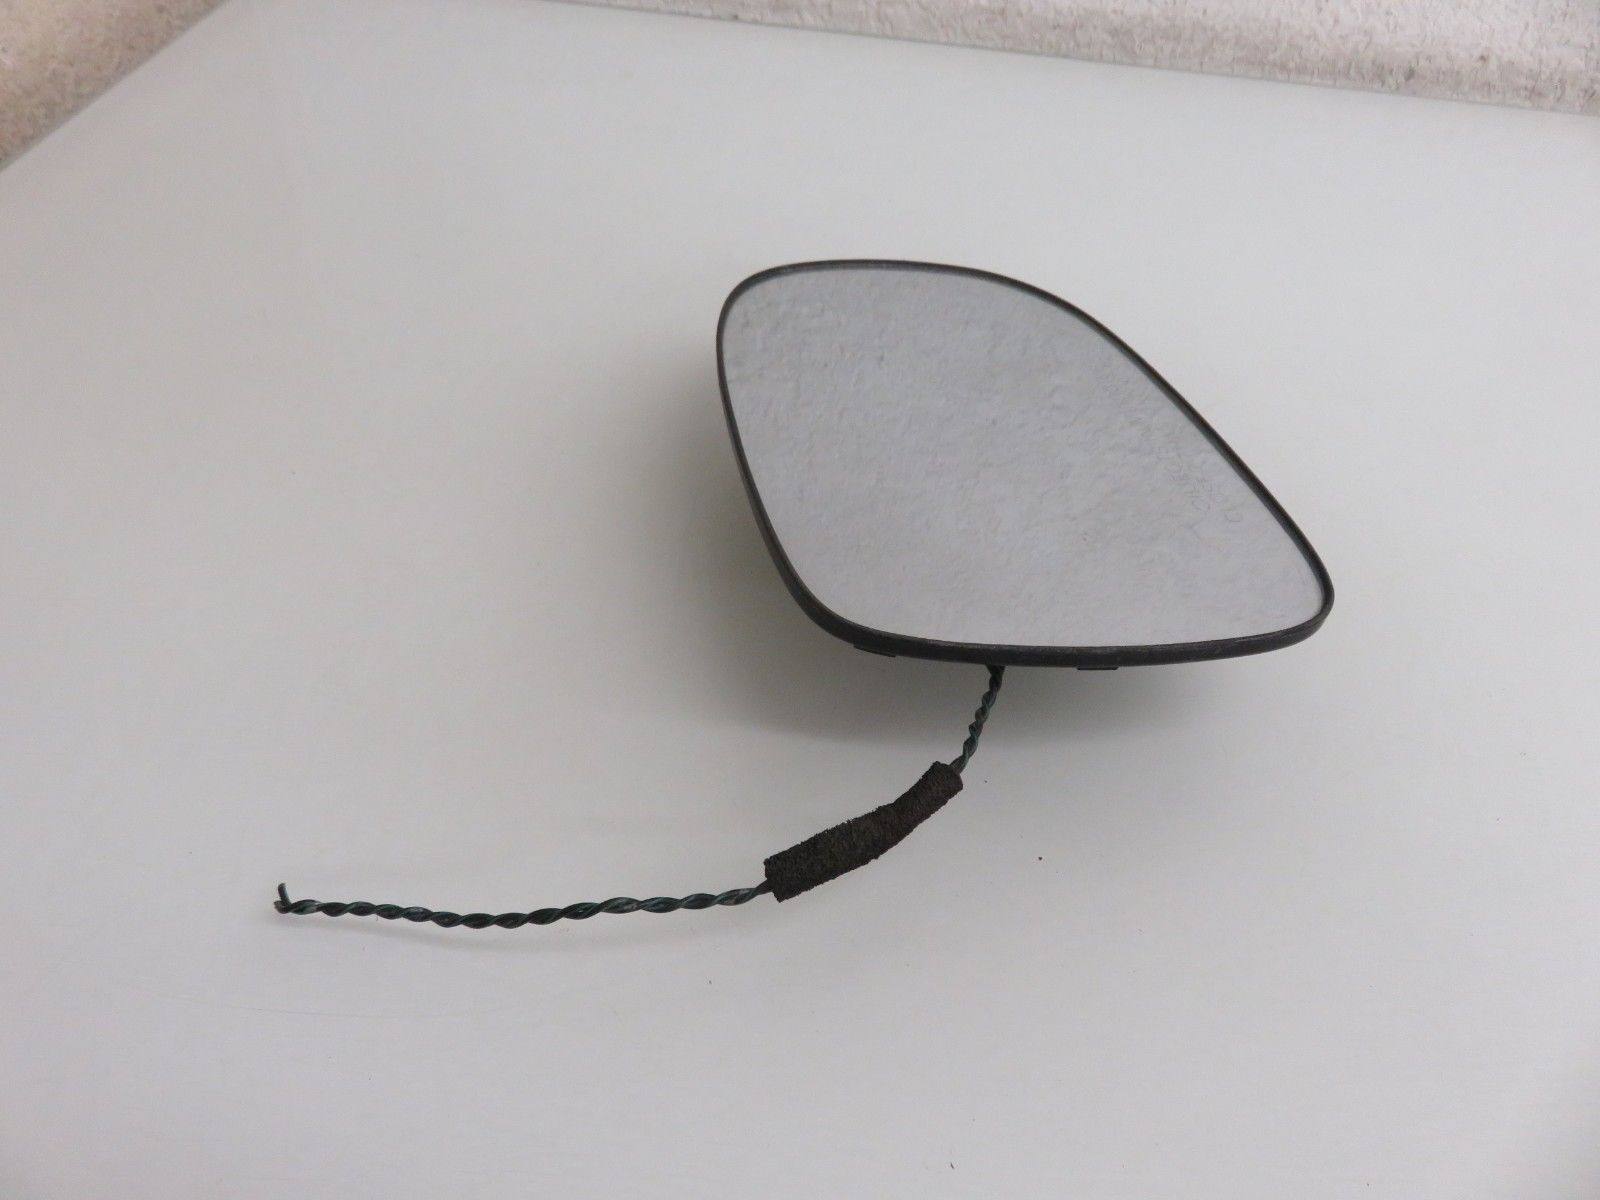 06-08 LEXUS IS250 IS350 FRONT RIGHT PASSENGER SIDE MIRROR GLASS OEM